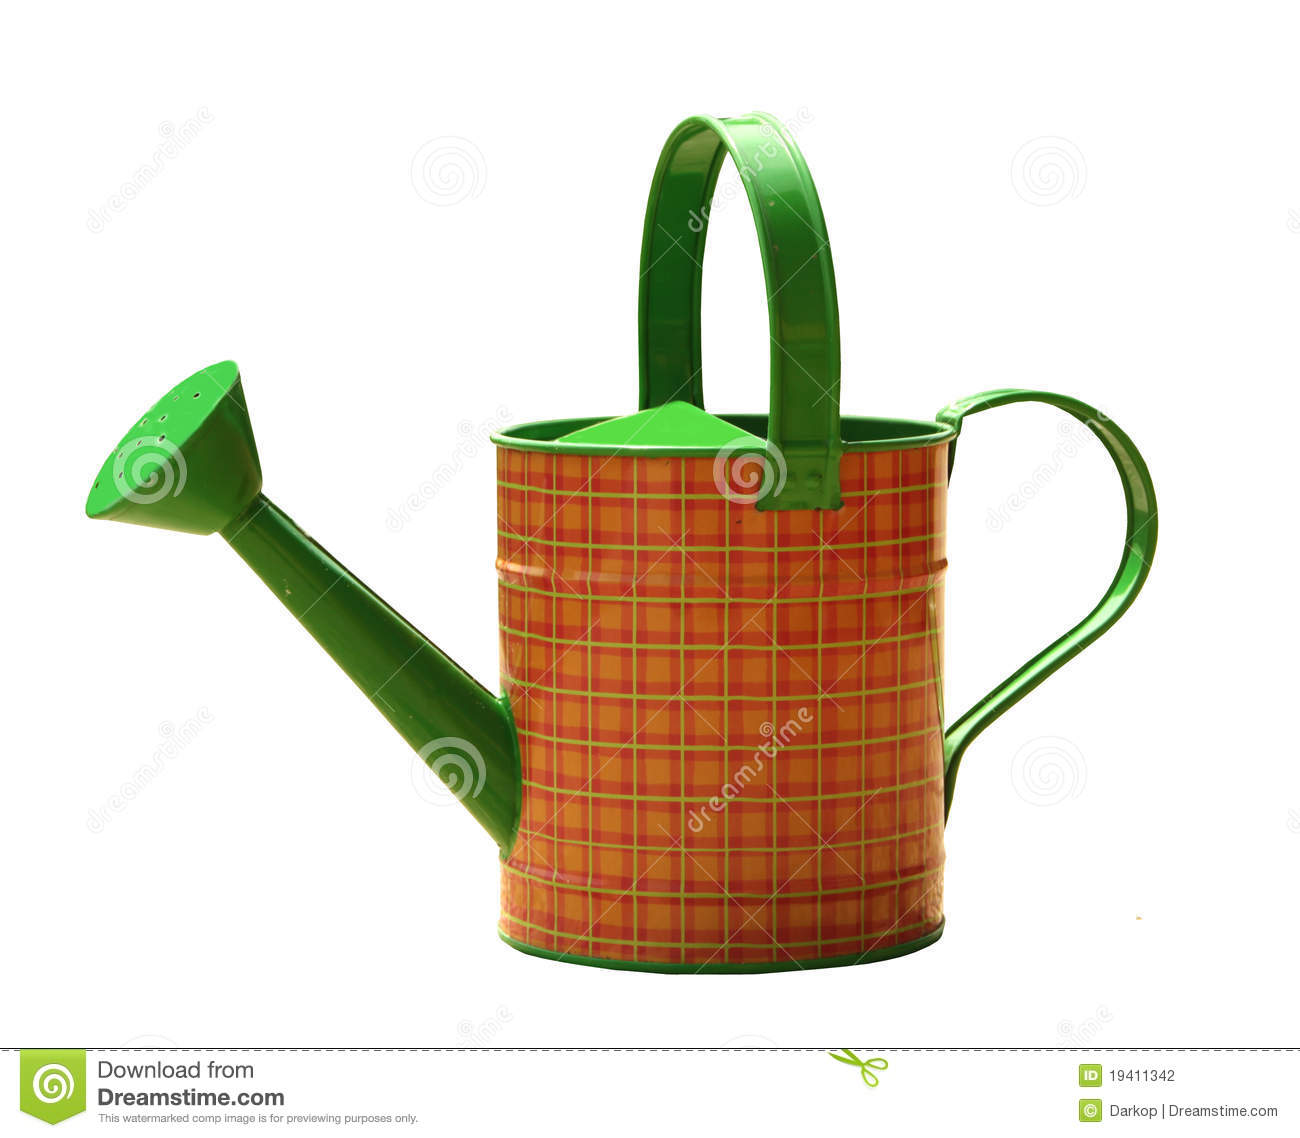 Genial Garden Pail For Plants Watering Isolated On White